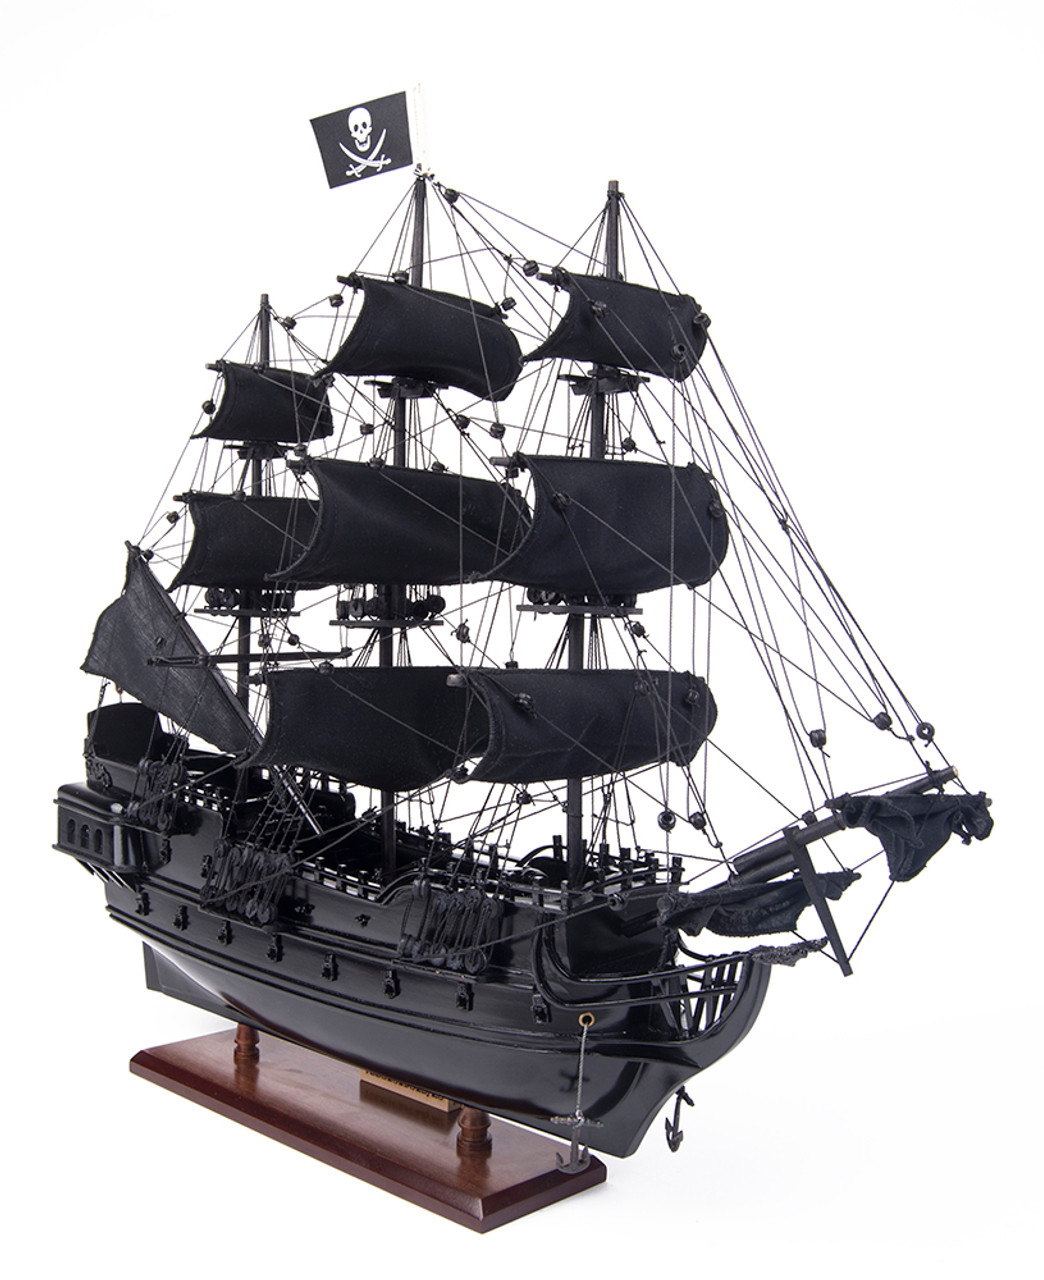 "Small Black Pearl Caribbean Pirate Tall Ship Wood Model 20/"" Fully Assembled New"